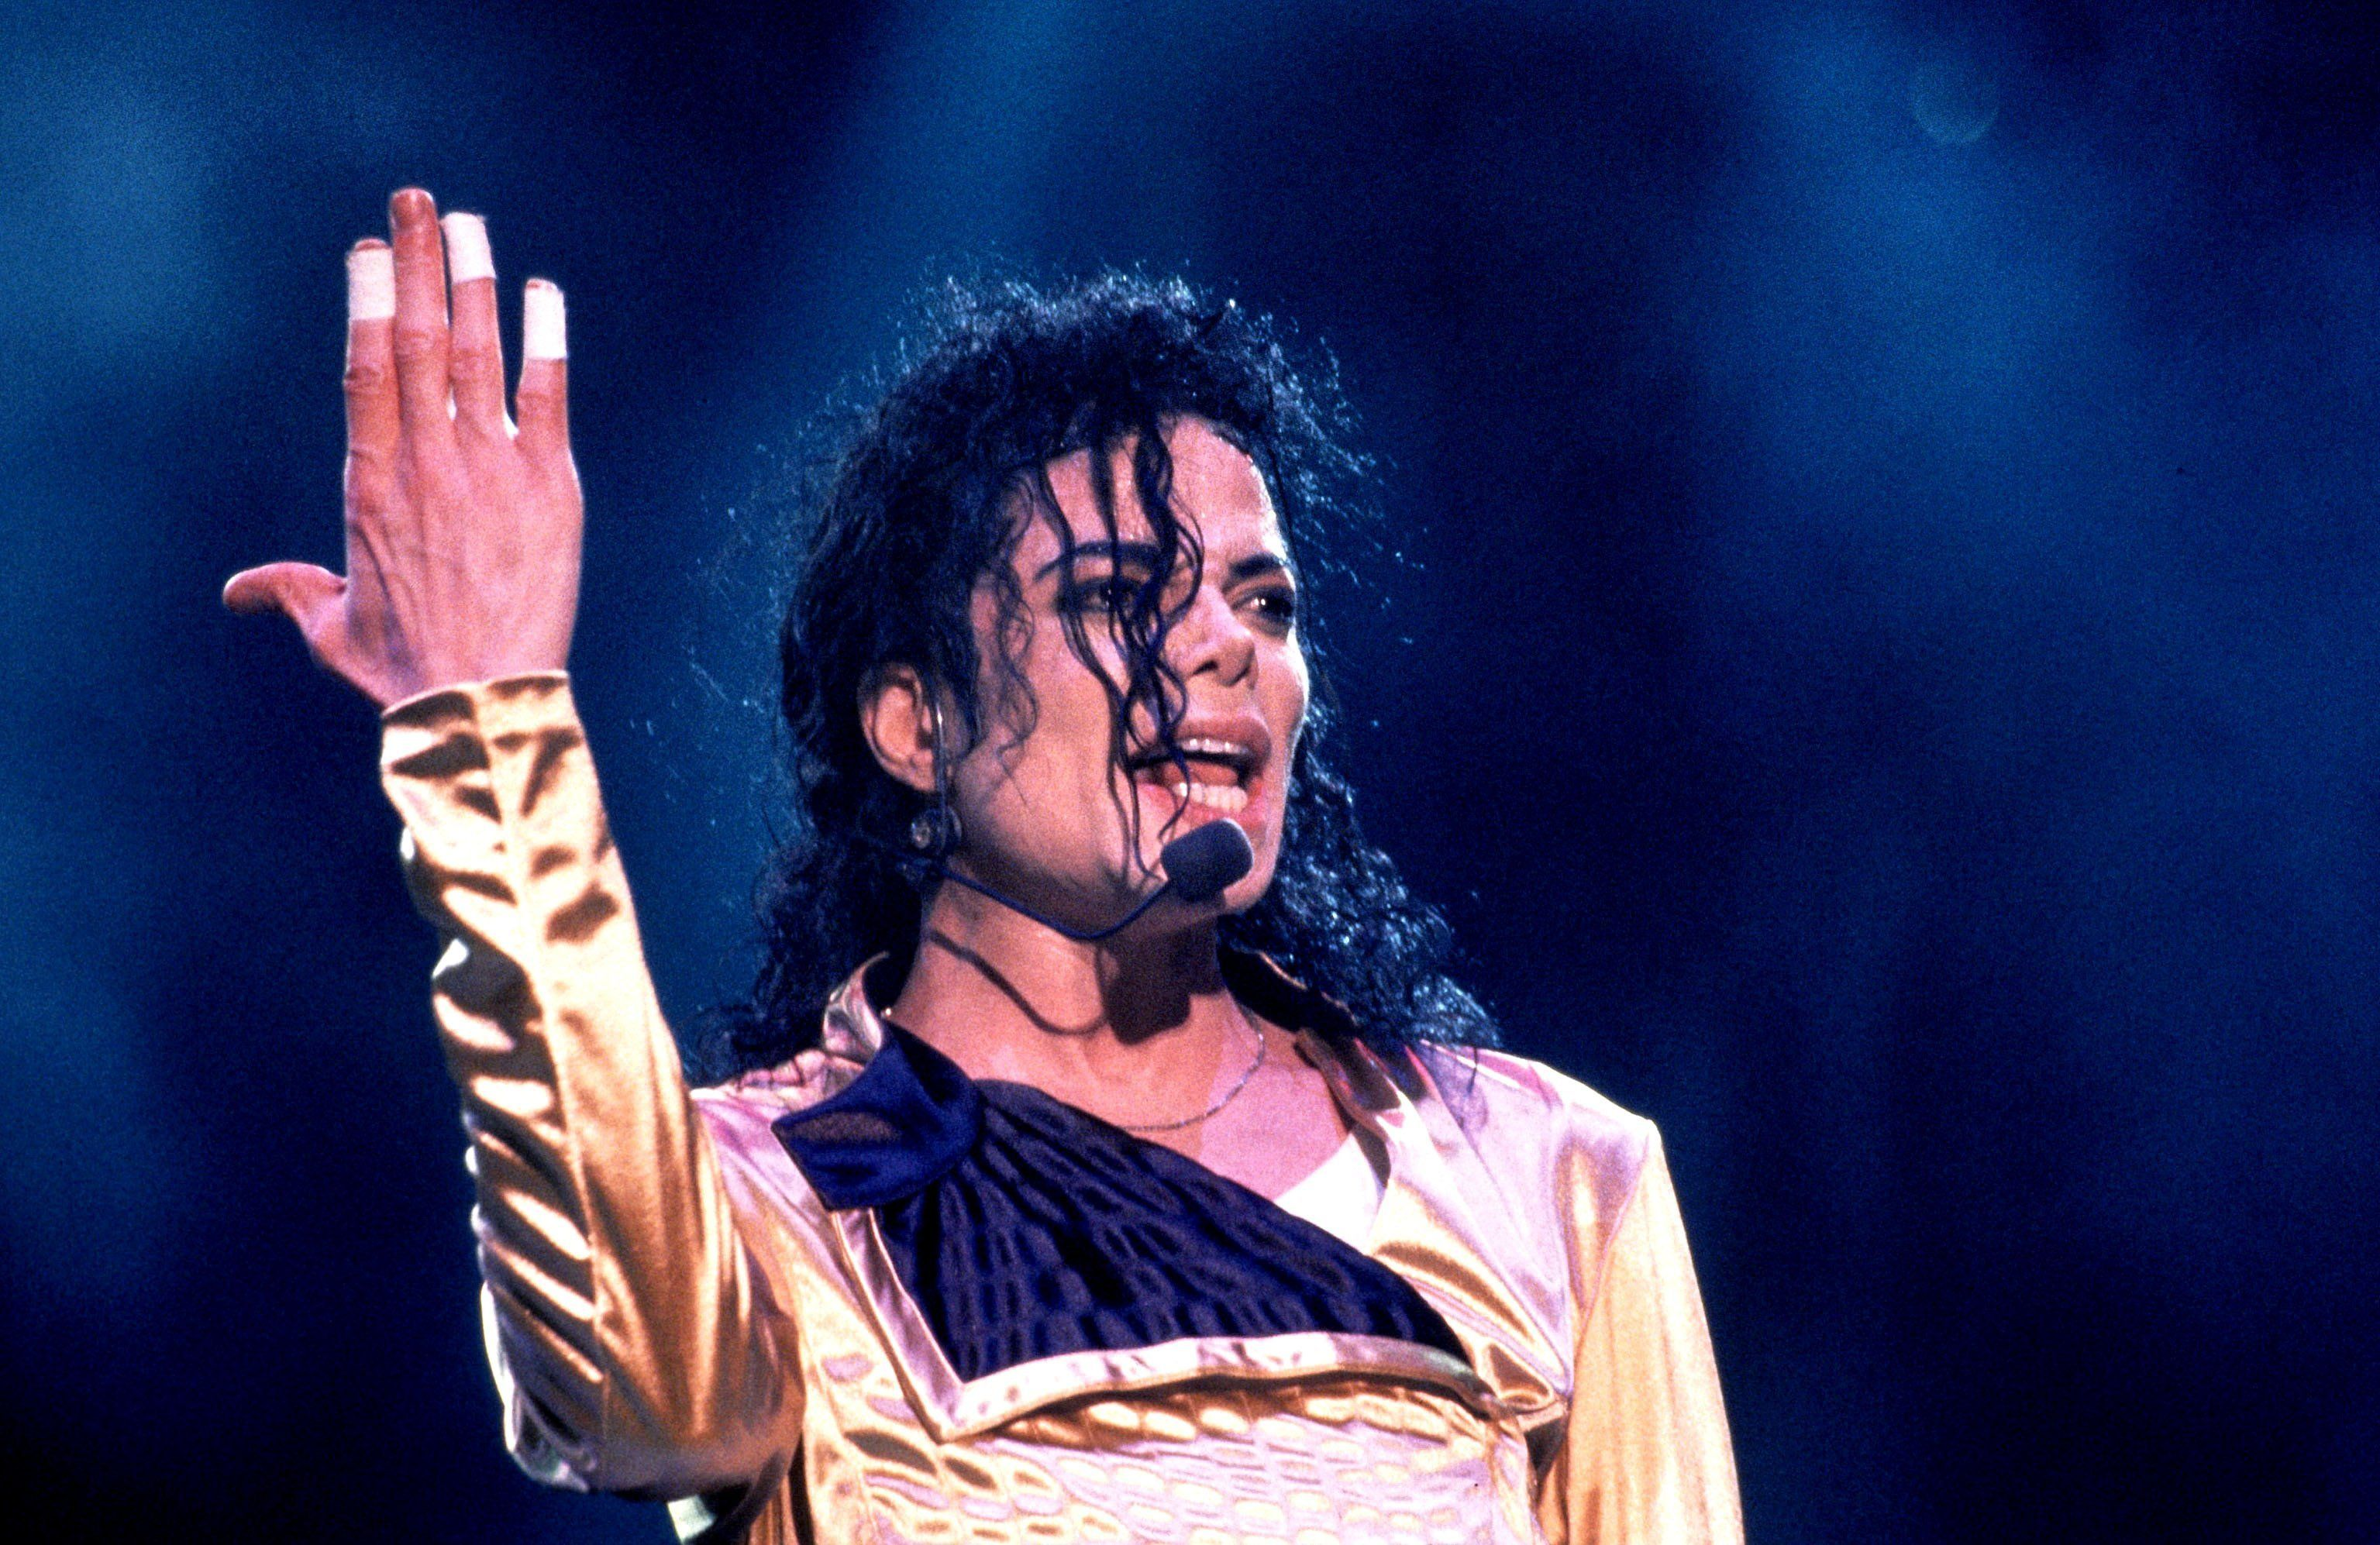 Sony Denies Conceding Three Posthumous Michael Jackson Songs Don't Actually Feature His